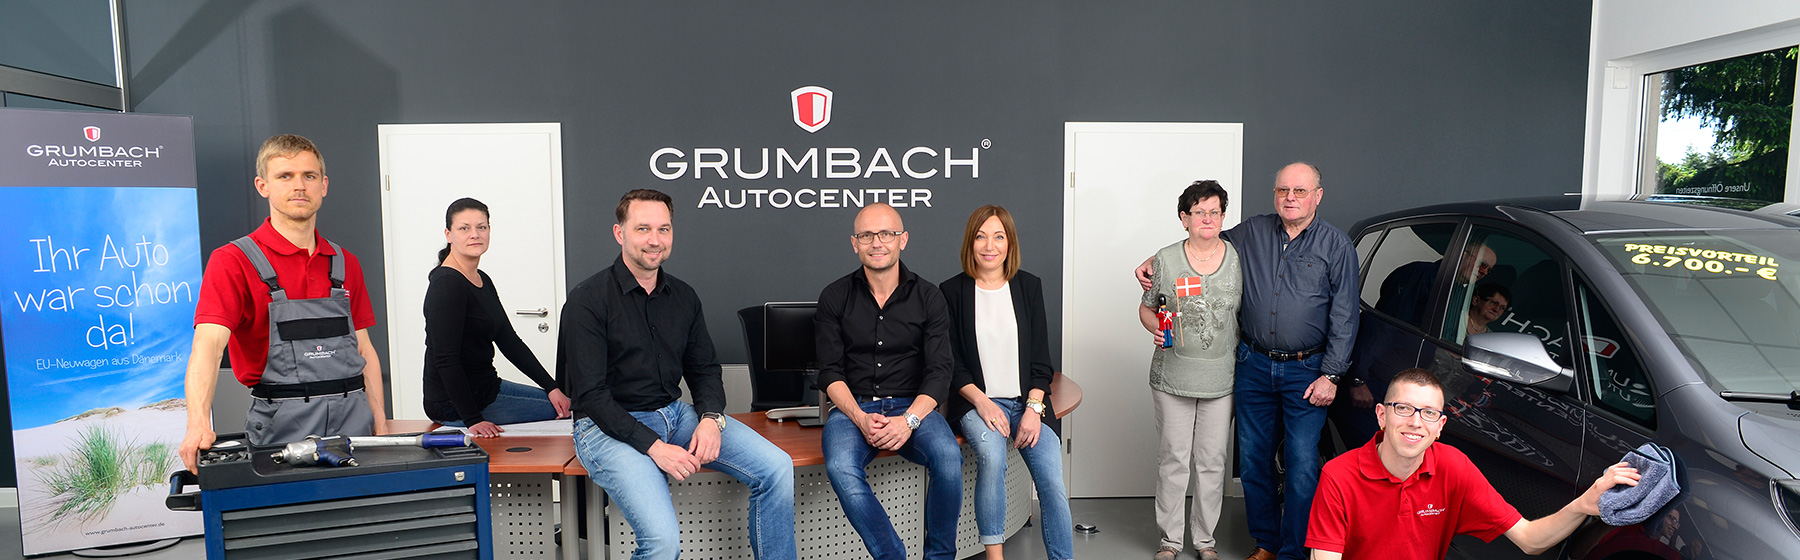 Team Autocenter Grumbach